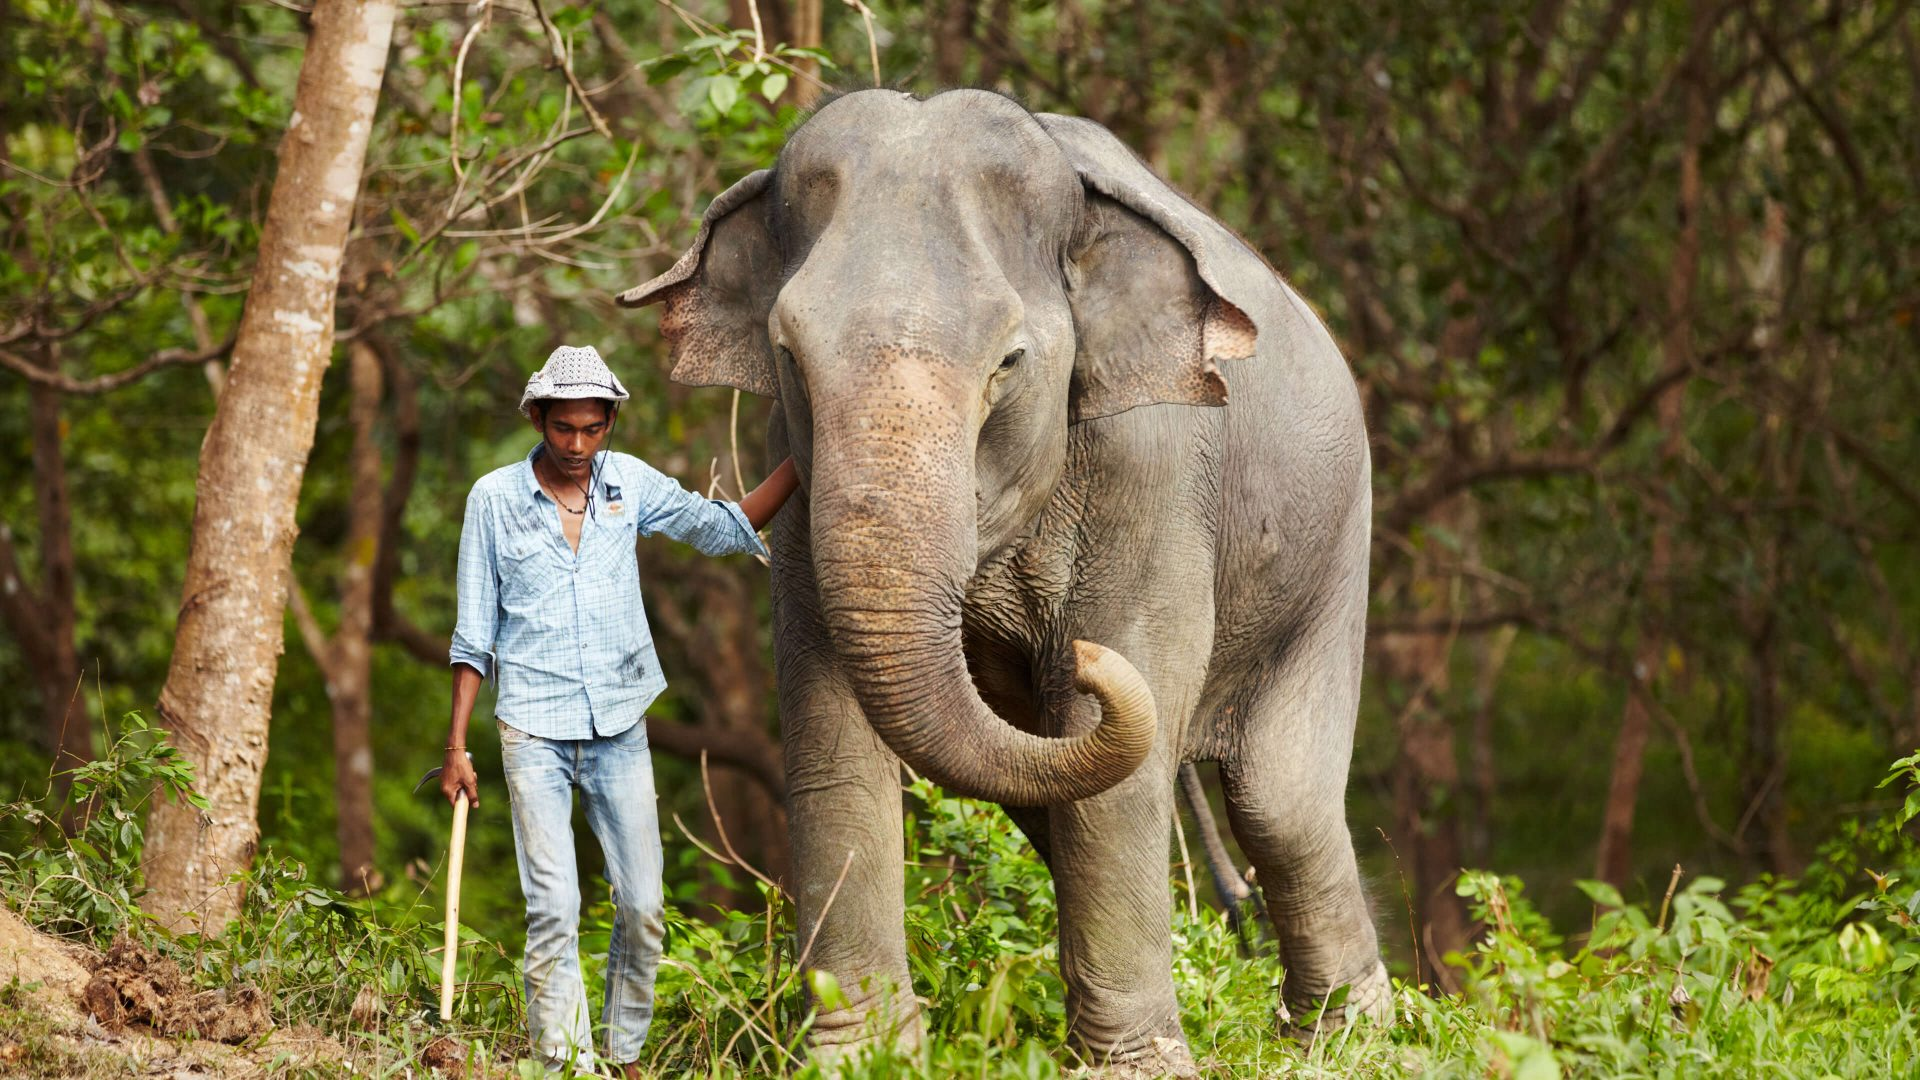 Elephant trekking: A gray area?